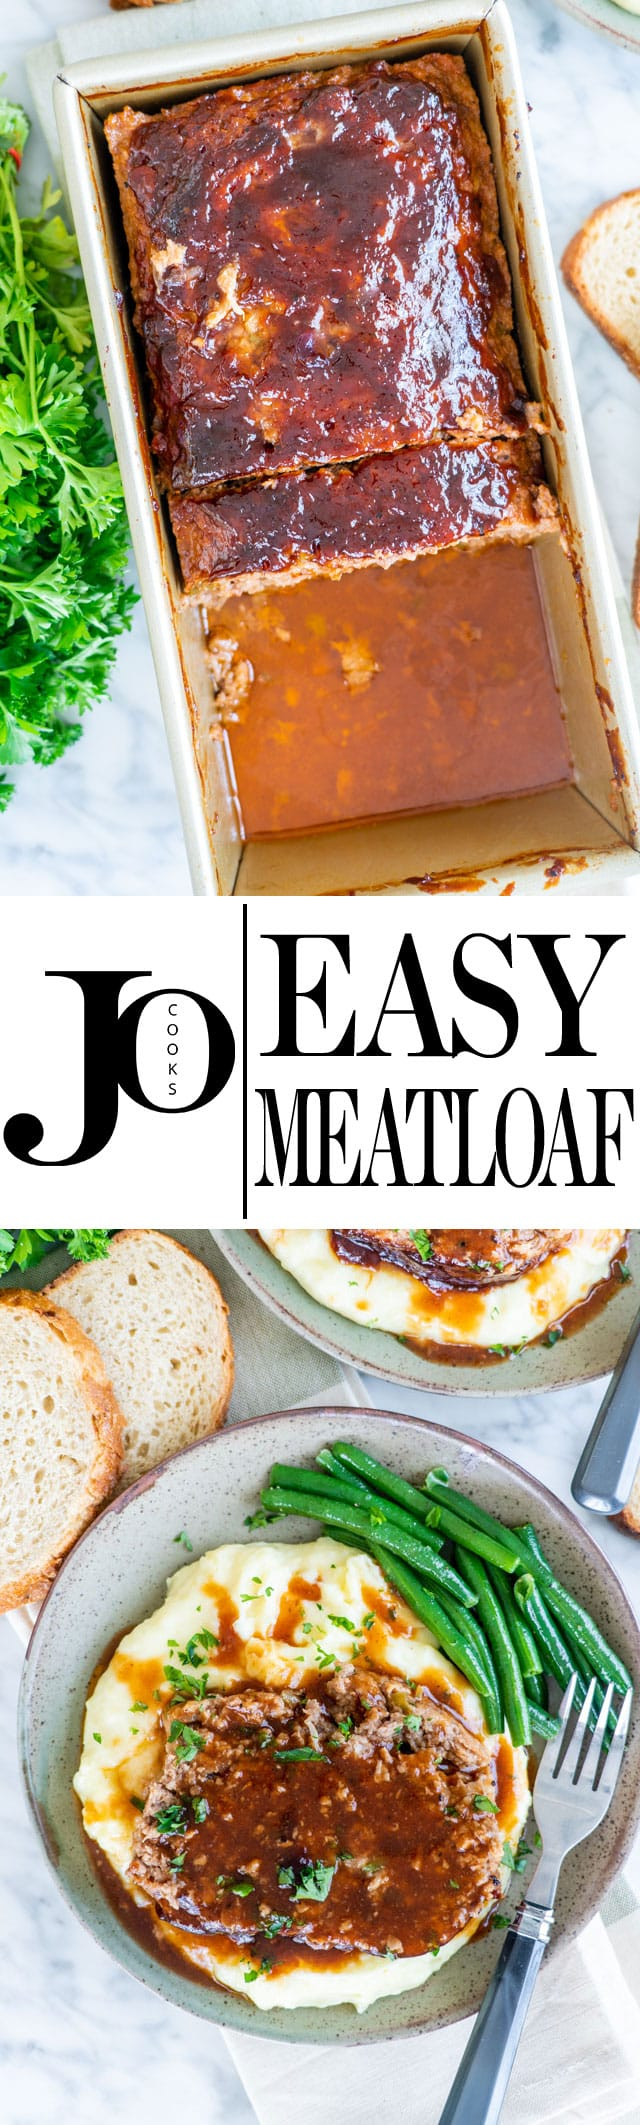 This Easy Meatloaf is a favorite at my house. It's the recipe we always use when we want meatloaf. It's perfect with a side of mashed potatoes. #meatloaf